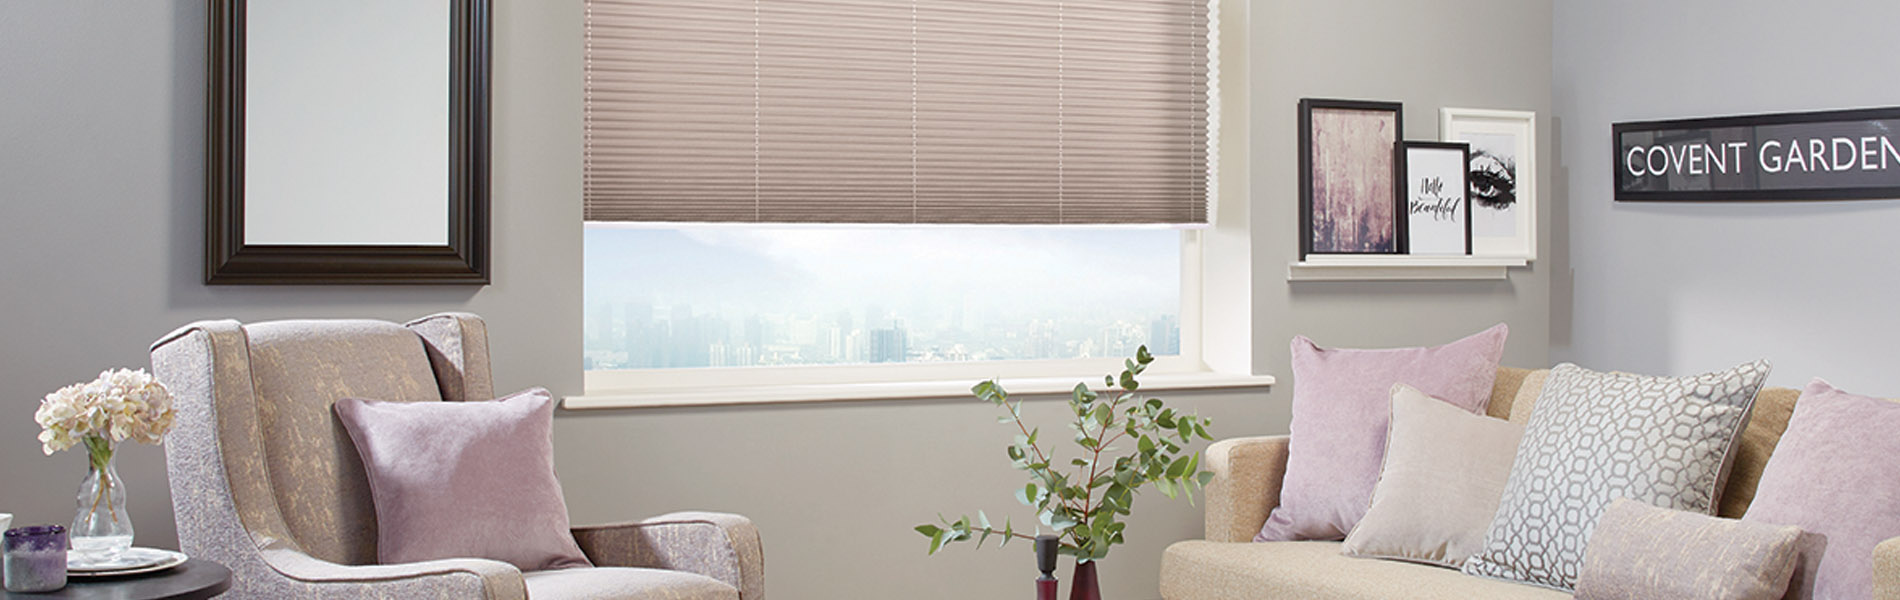 vancouver biz st of fairview photo express pine bc slopes ls blinds shades canada